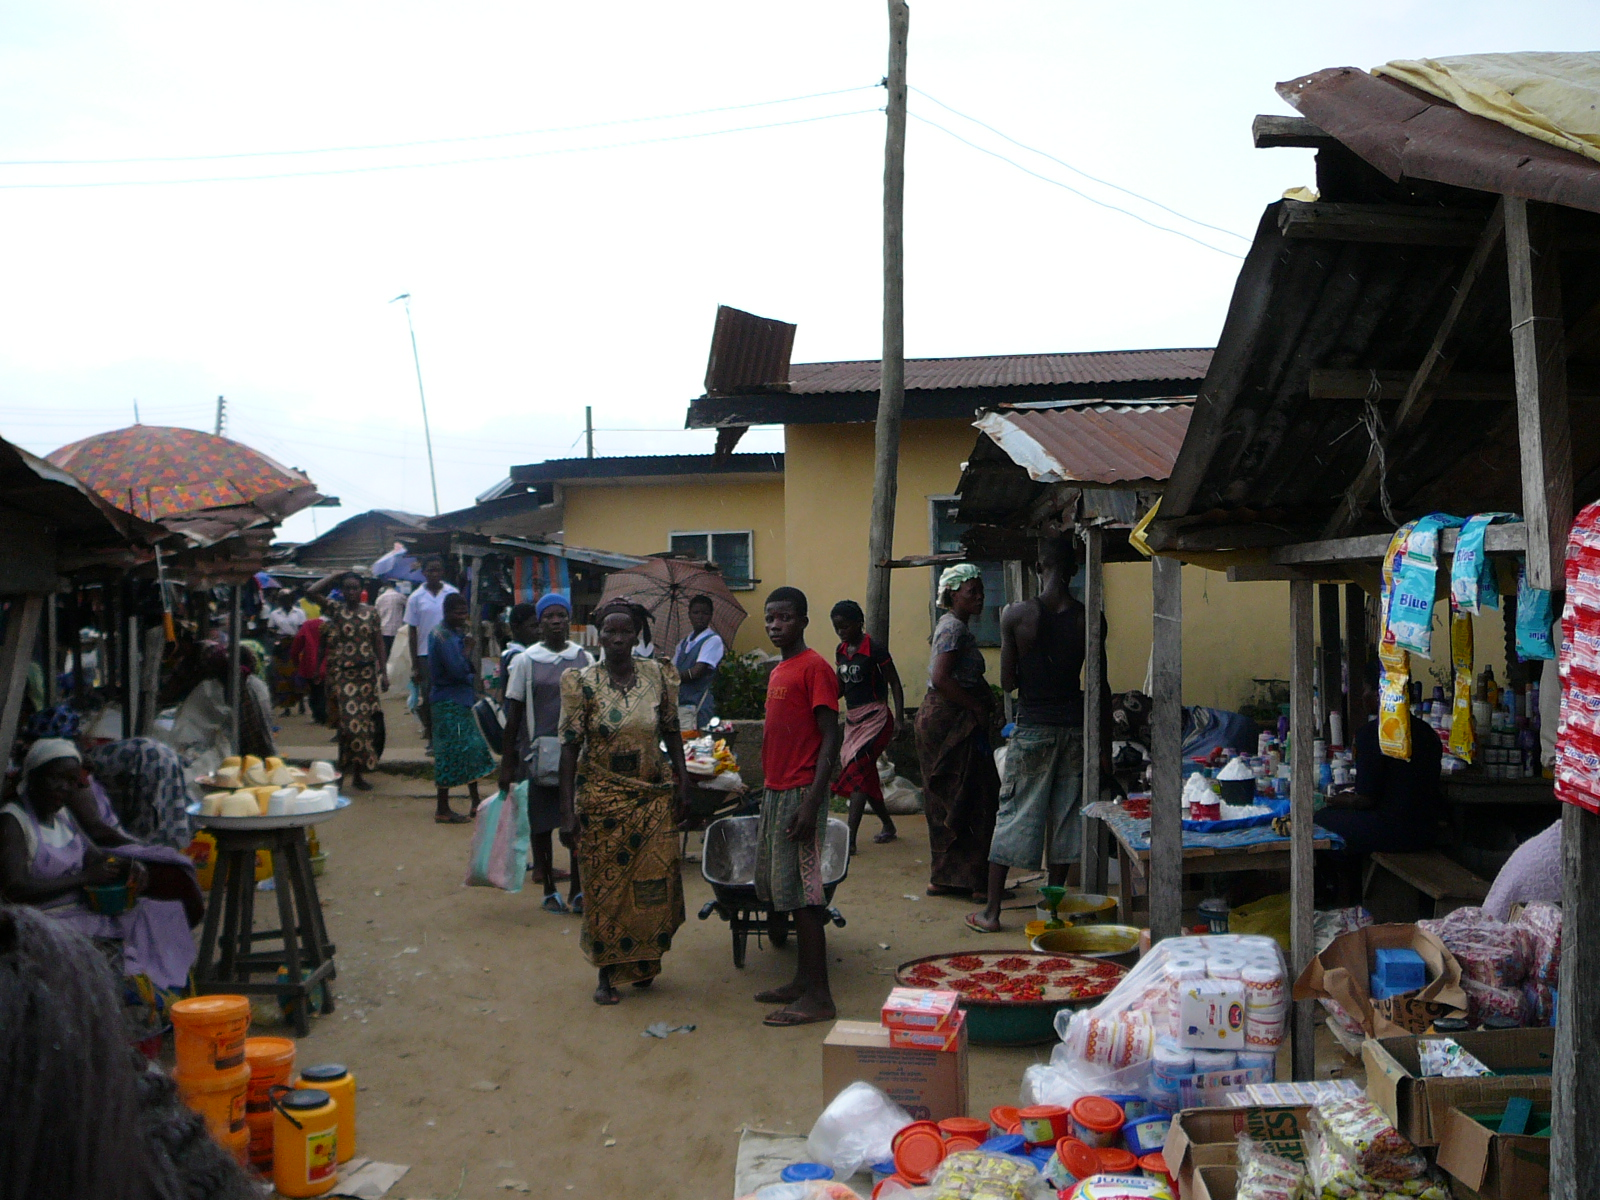 Amakiri Market: The researchers found that infertile Amakiri women were more disadvantaged than their Lopon counterparts.